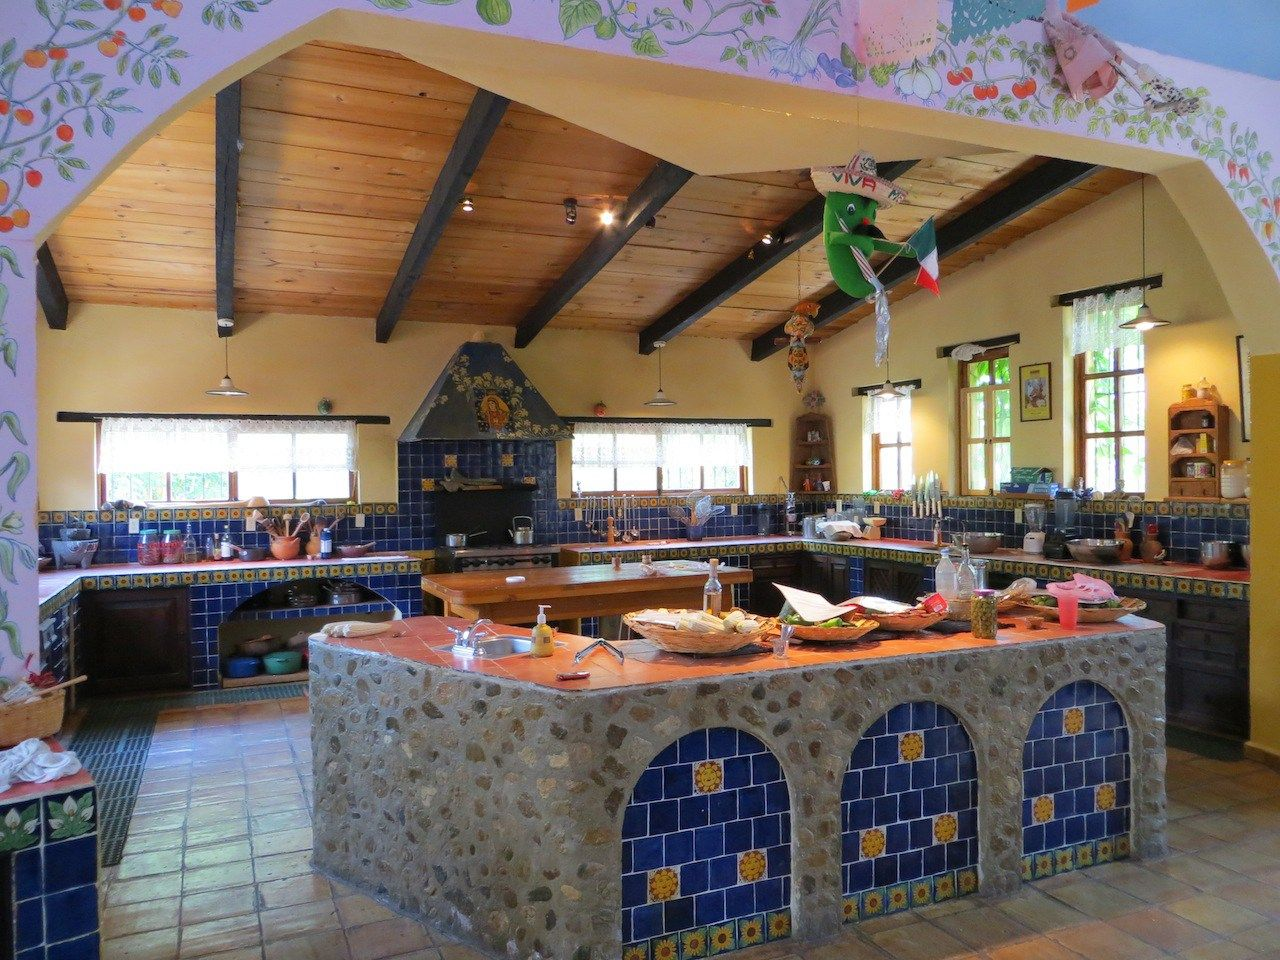 Beau The Kitchen At Seasons Of My Heart In Oaxaca. Photo By Dolores Wiarco Dweck.